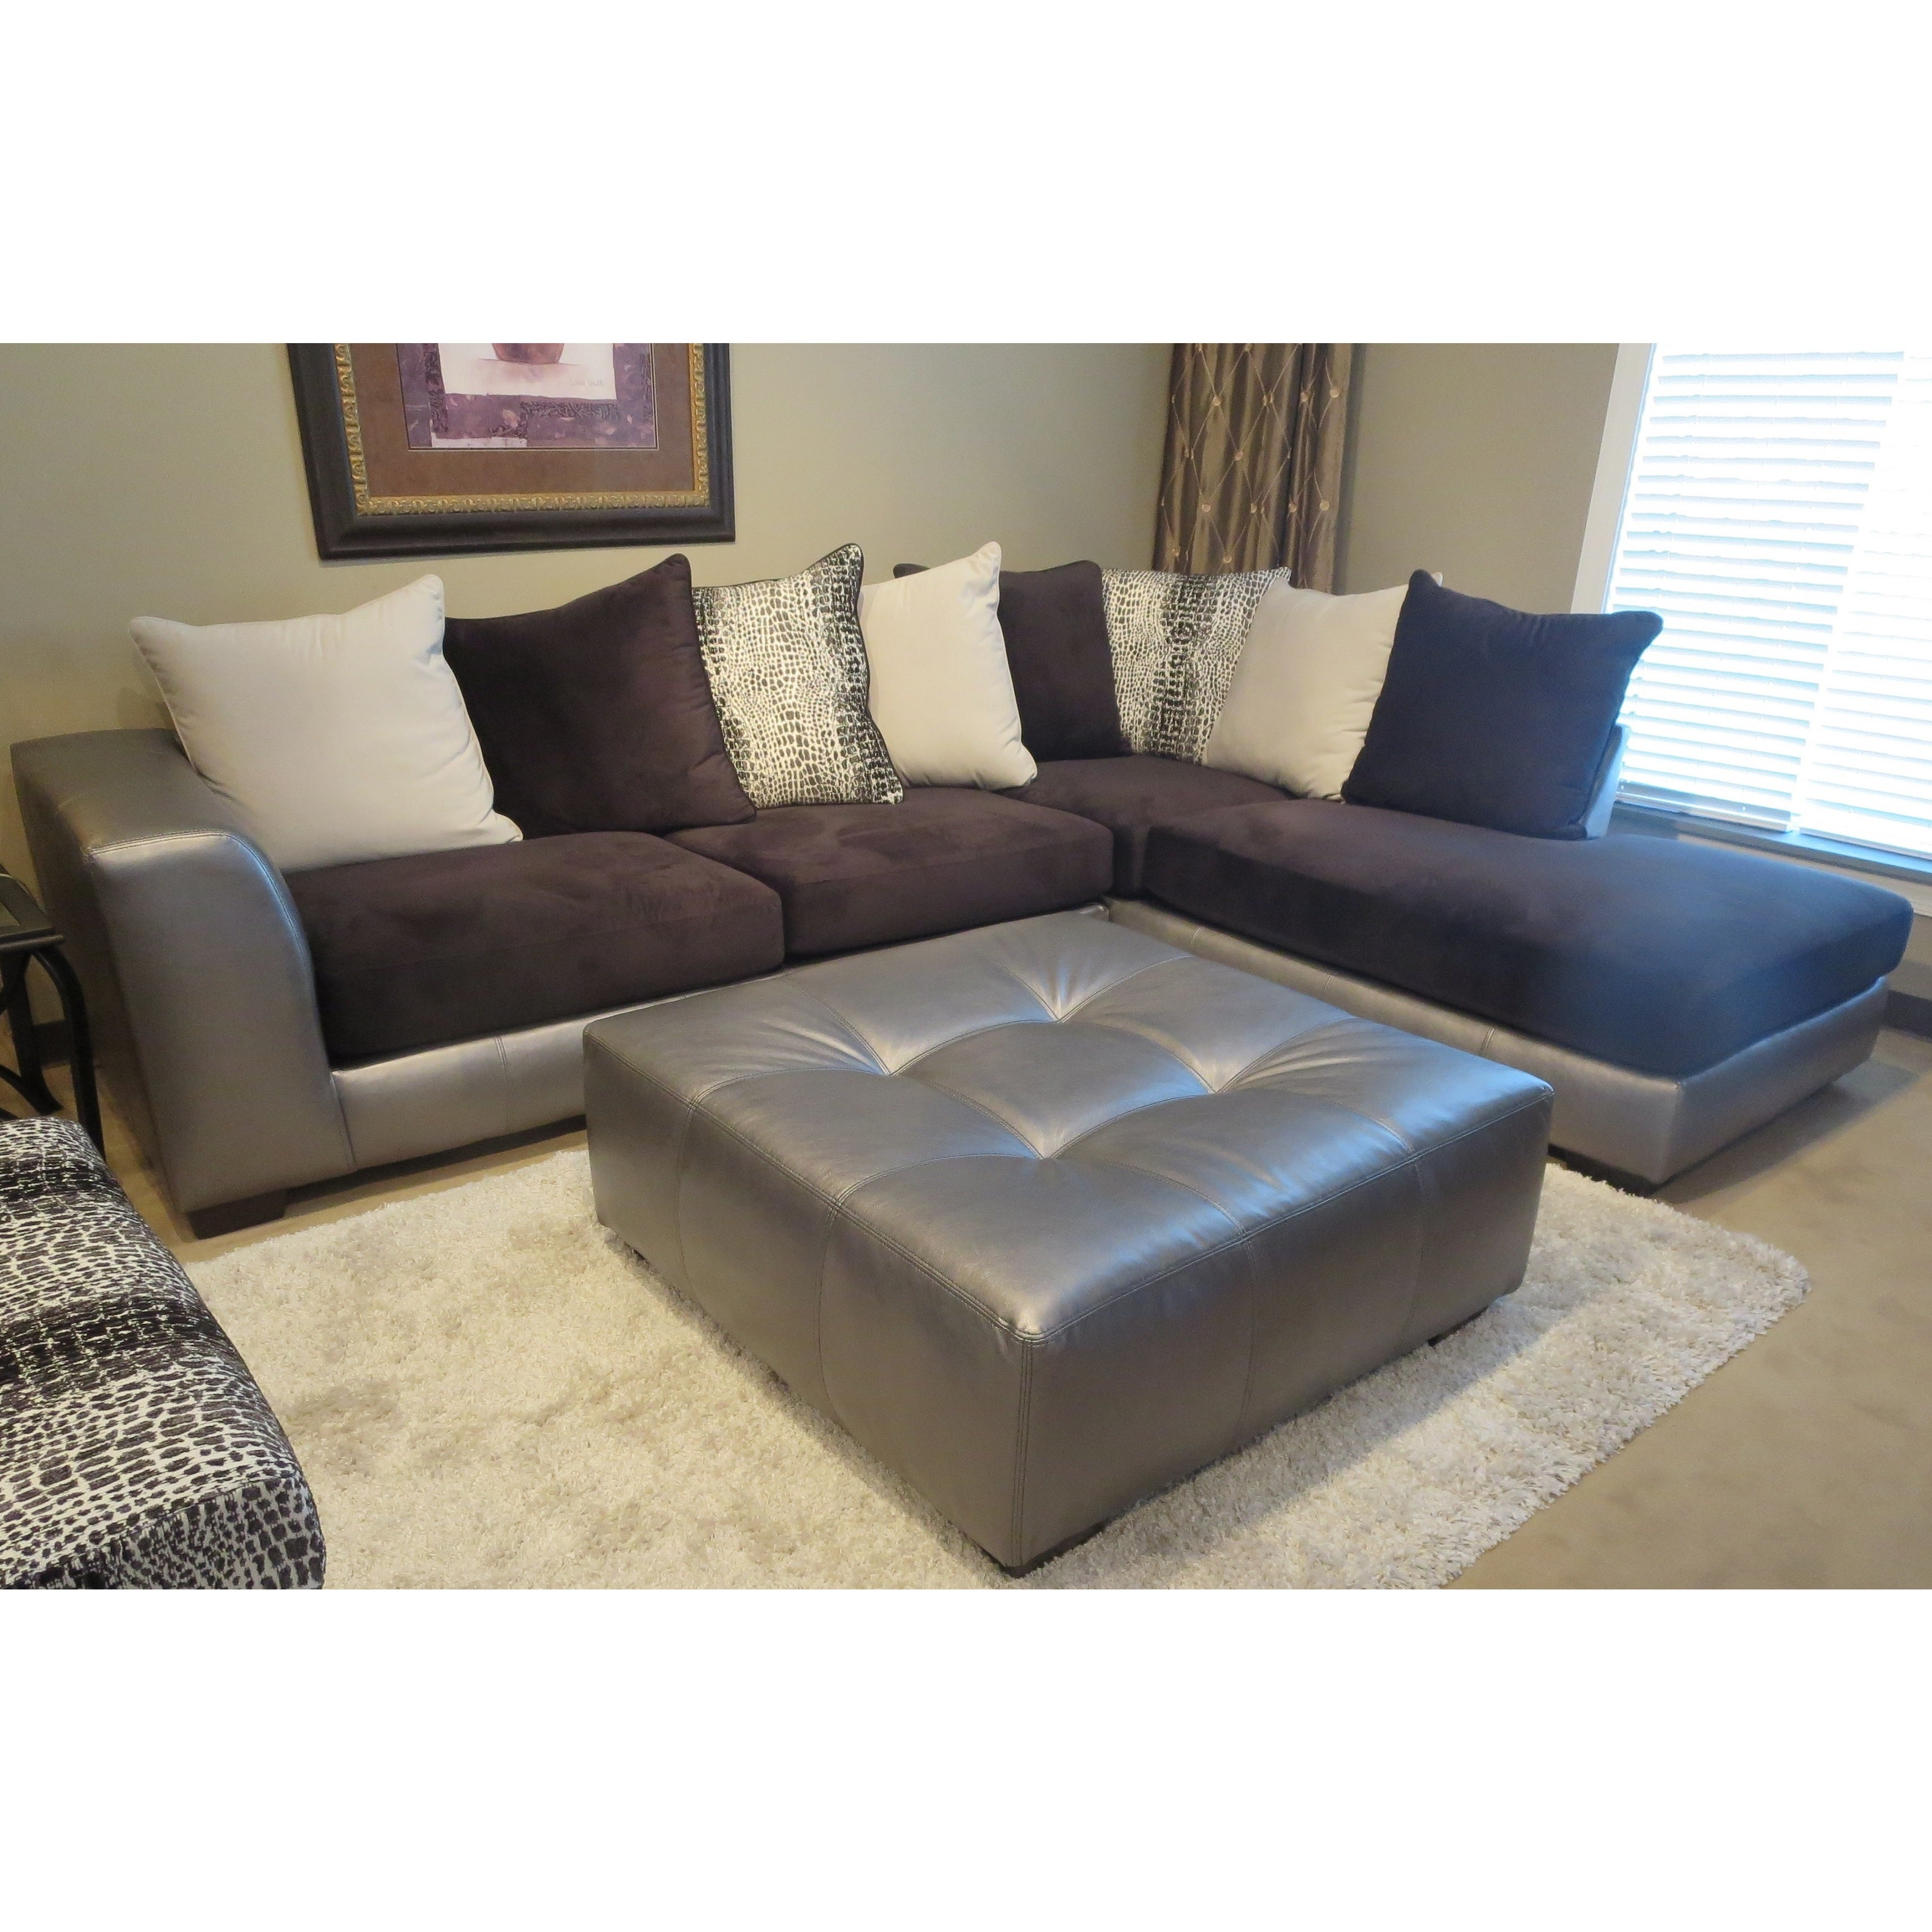 Shop Shimmer Pewter Microfiber Silver Grey Sectional Sofa And ...